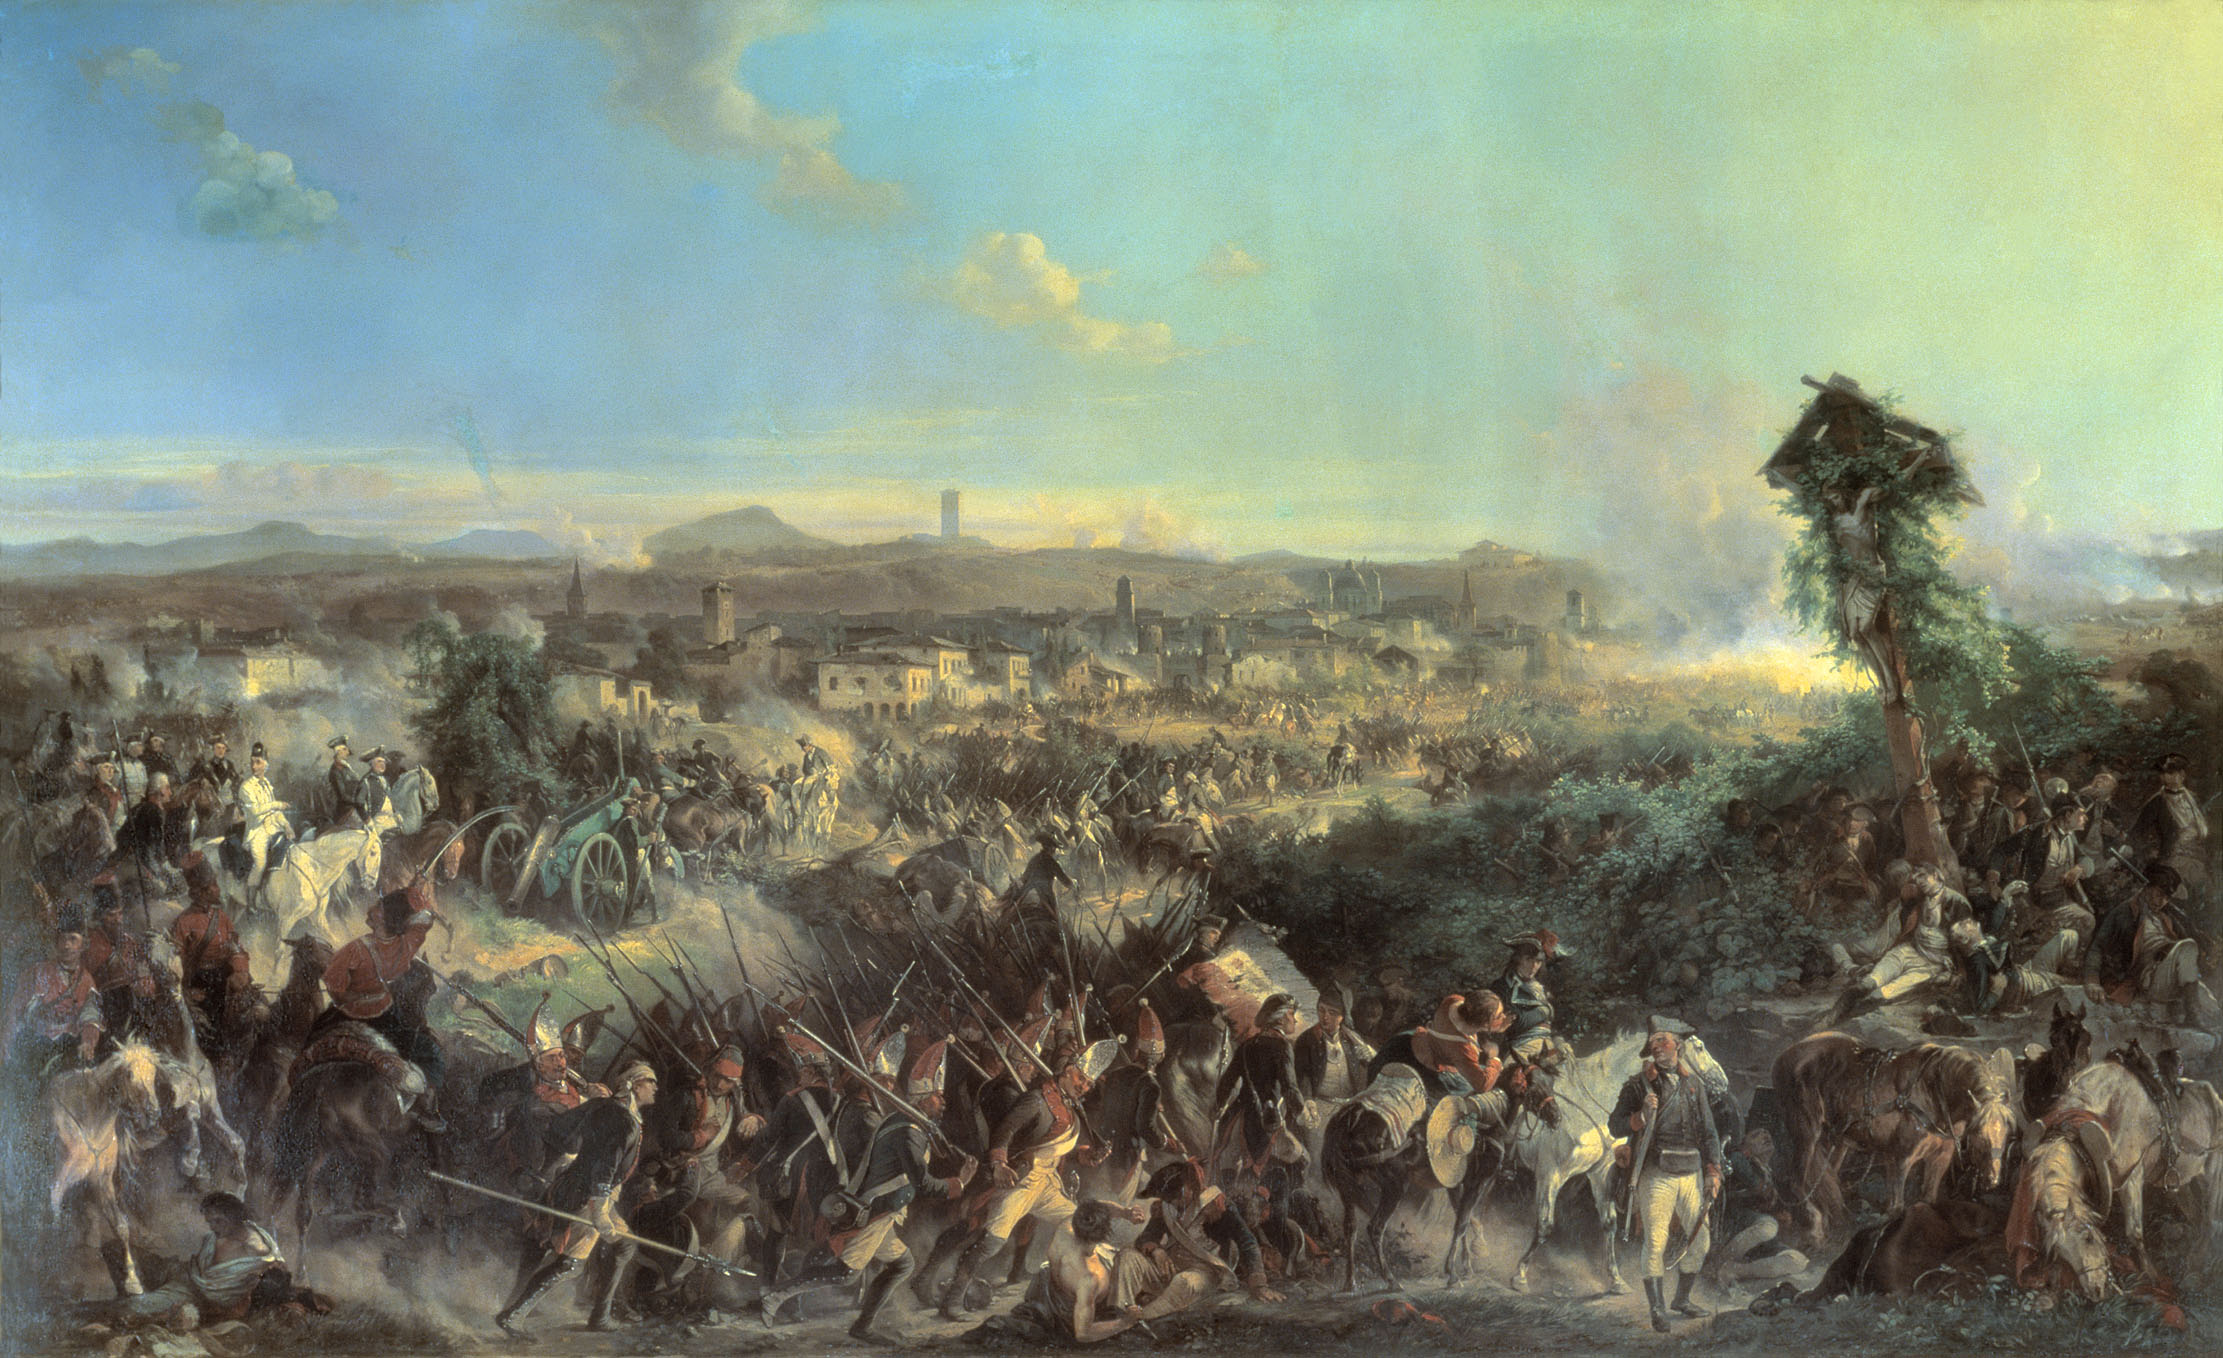 http://upload.wikimedia.org/wikipedia/commons/d/dc/Battle_of_Novi.jpg